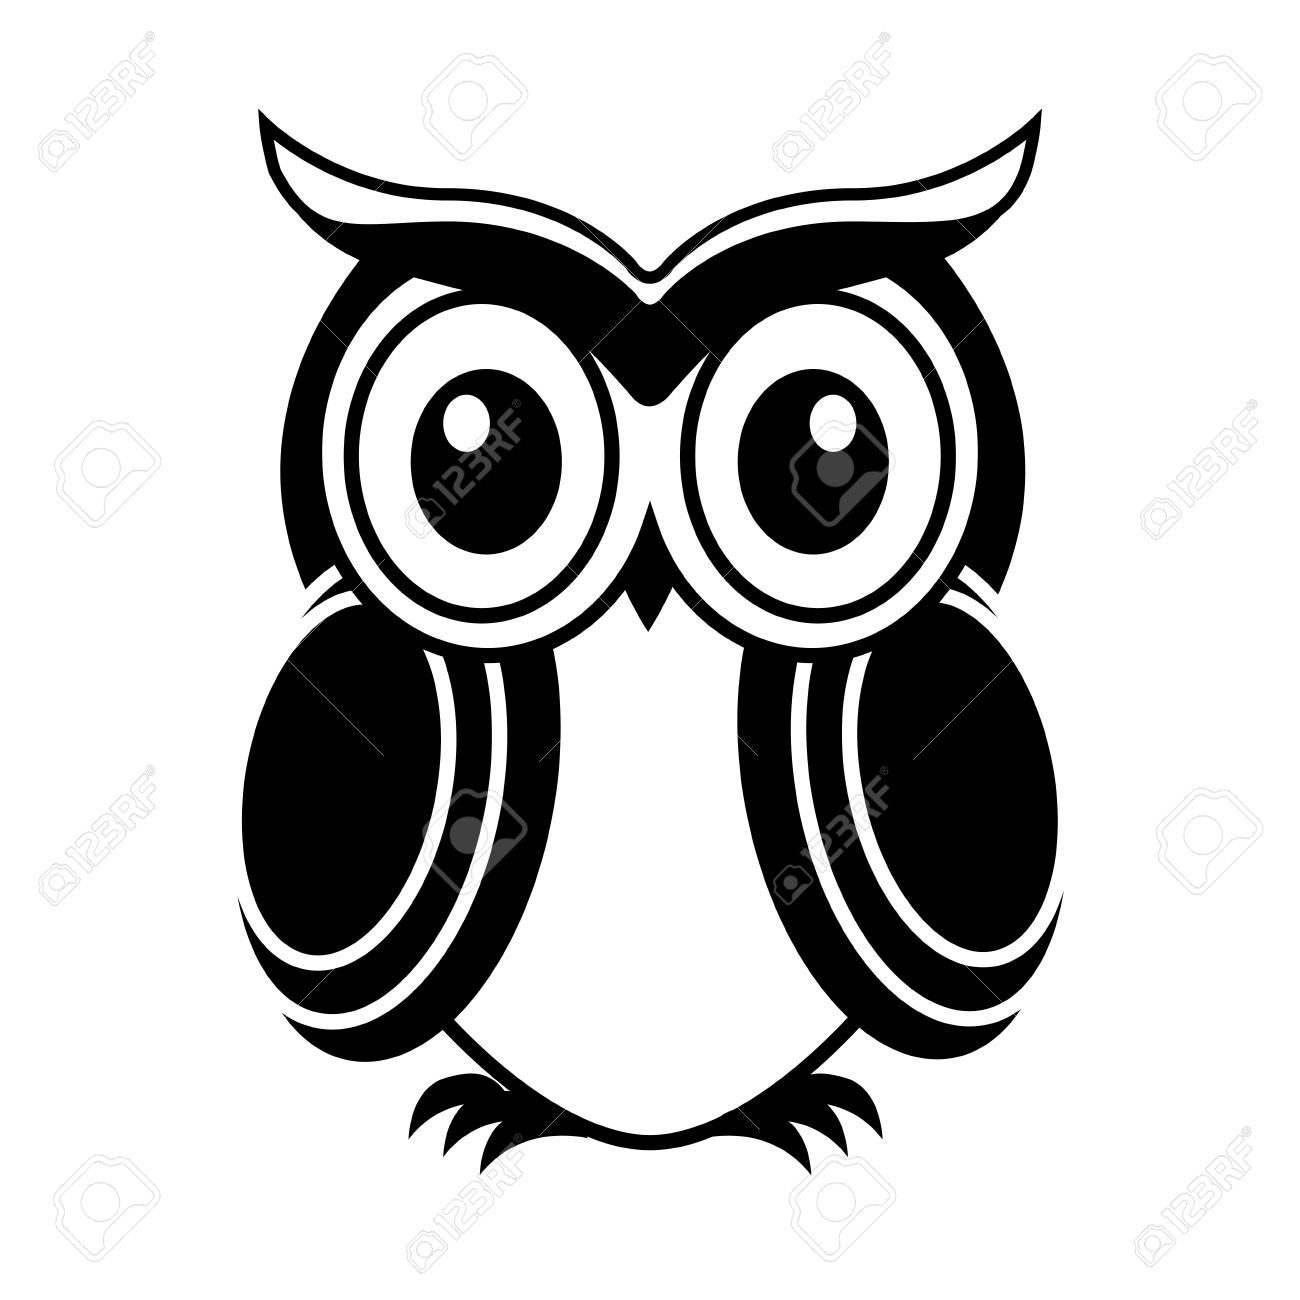 Owl Design Over White Background Vector Illustration Royalty Free